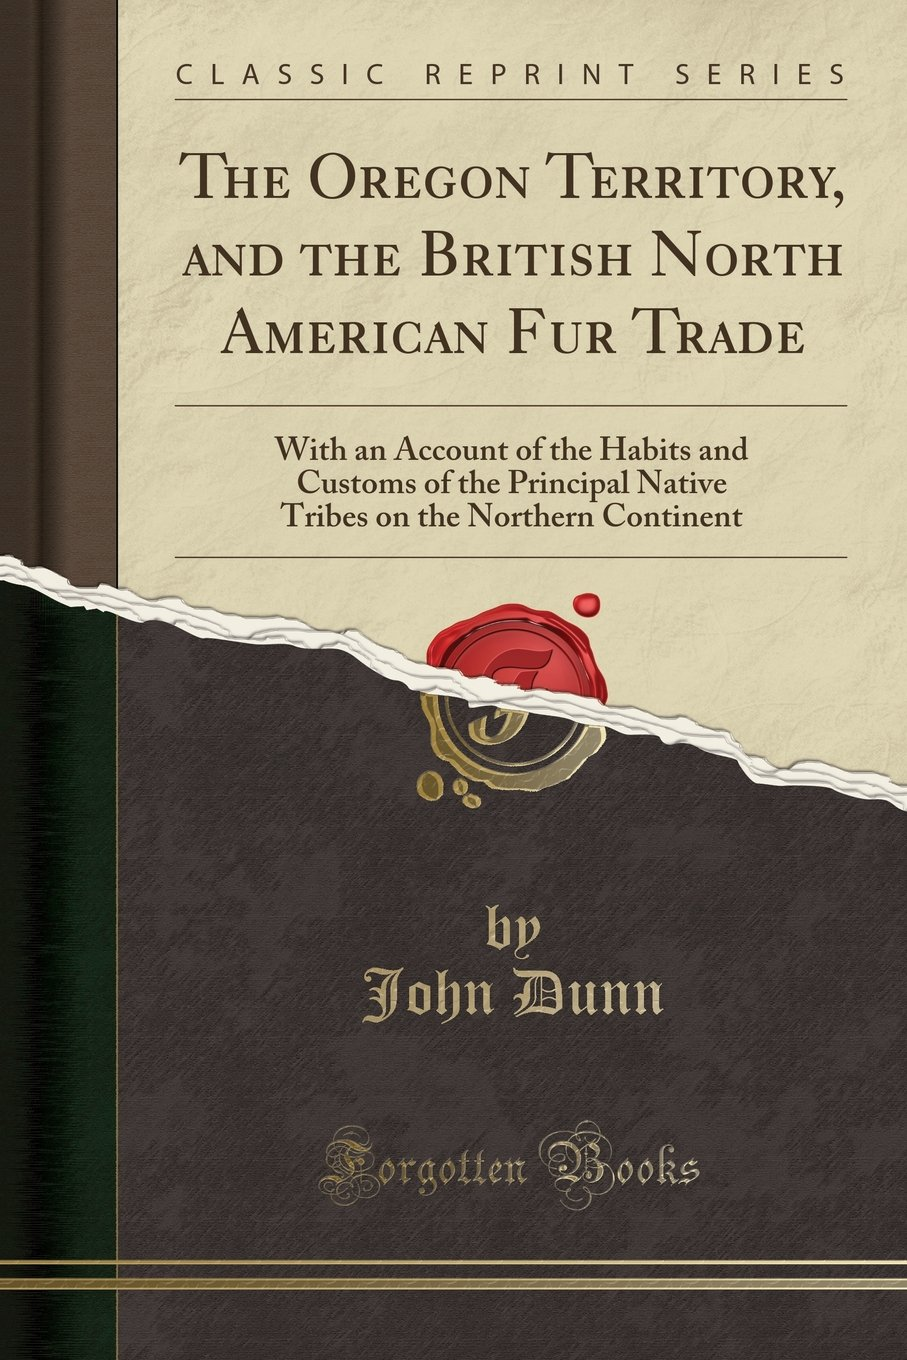 The Oregon Territory, and the British North American Fur Trade: With an Account of the Habits and Customs of the Principal Native Tribes on the Northern Continent (Classic Reprint) PDF